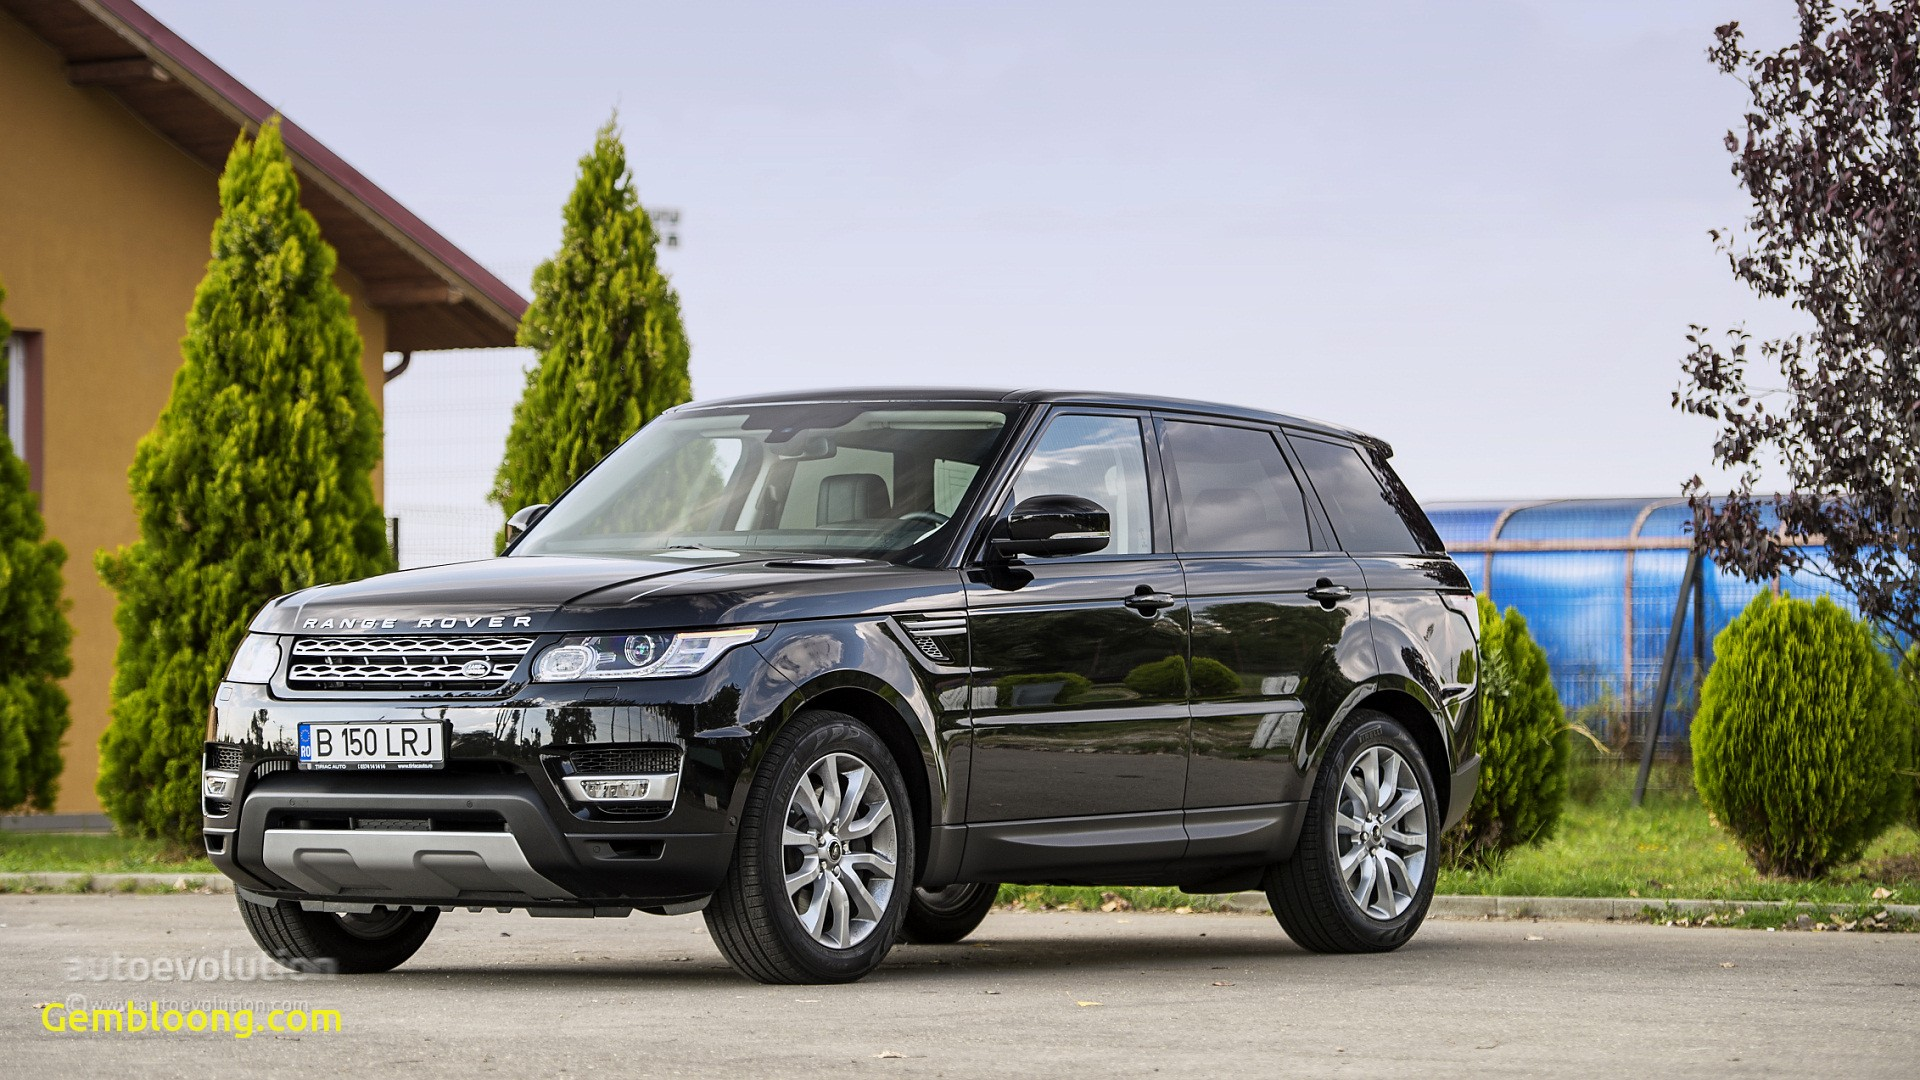 2014 range rover sport review 2013 8